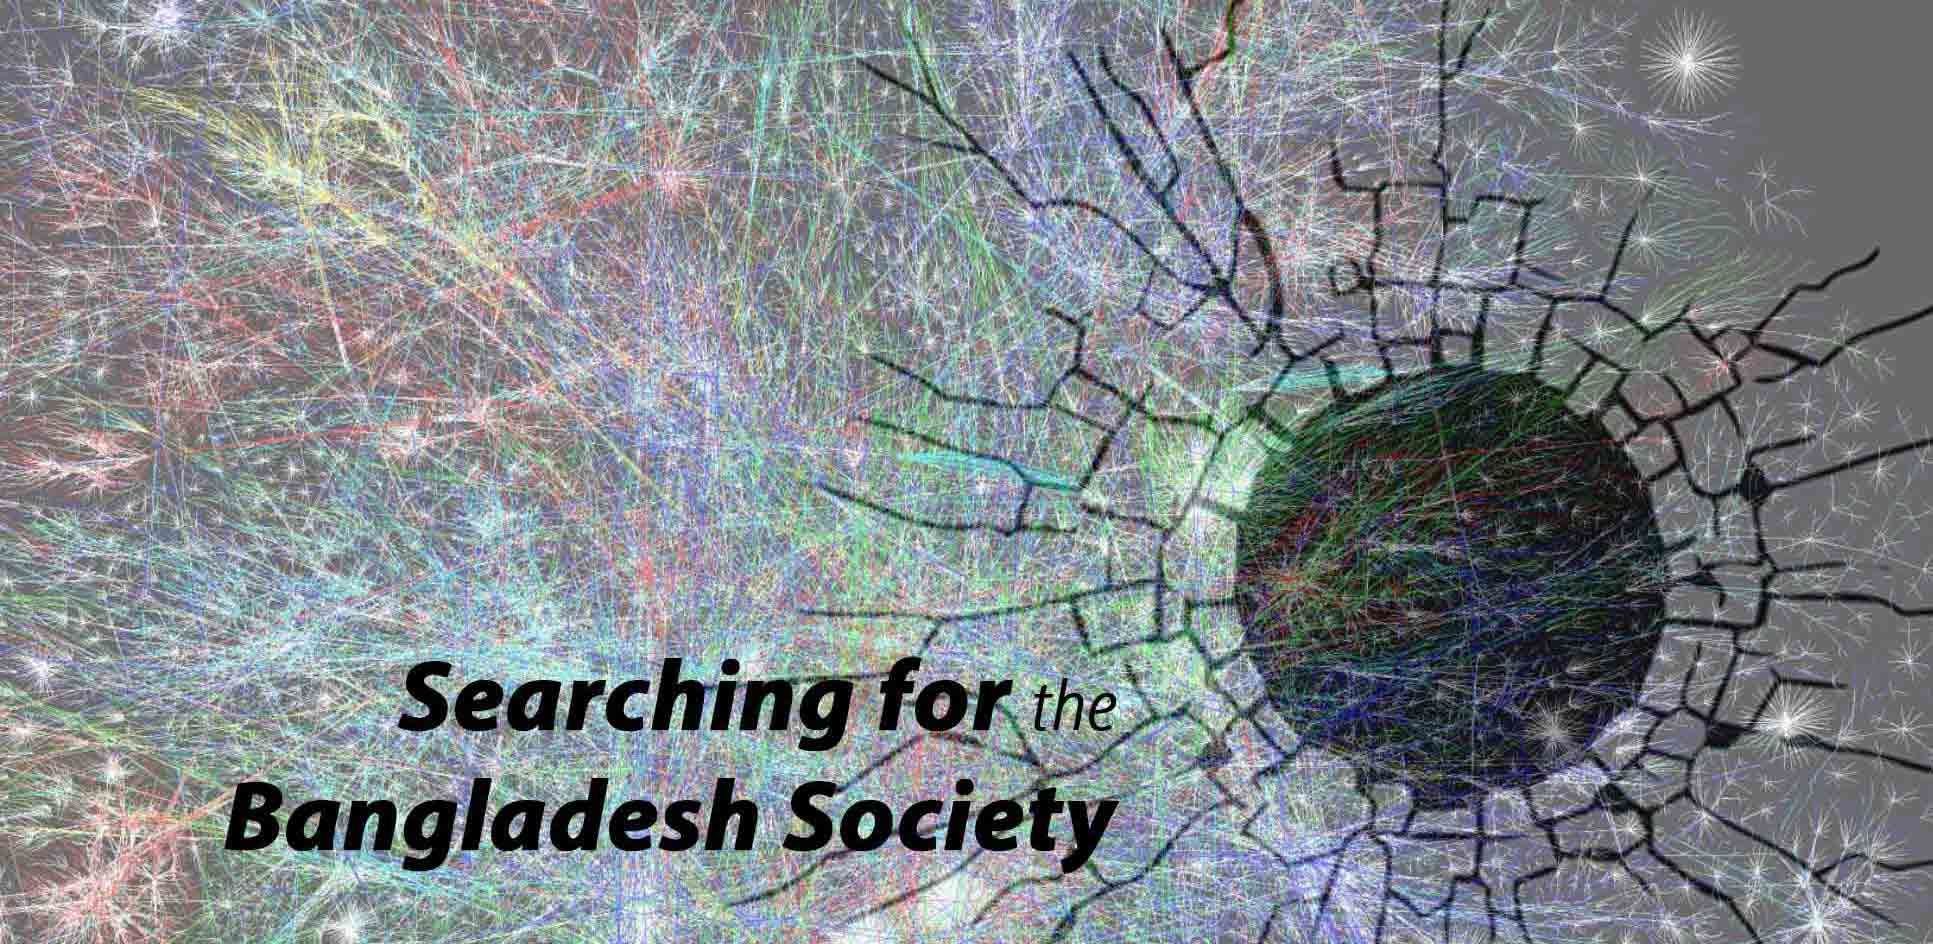 Searching for the Bangladesh Society